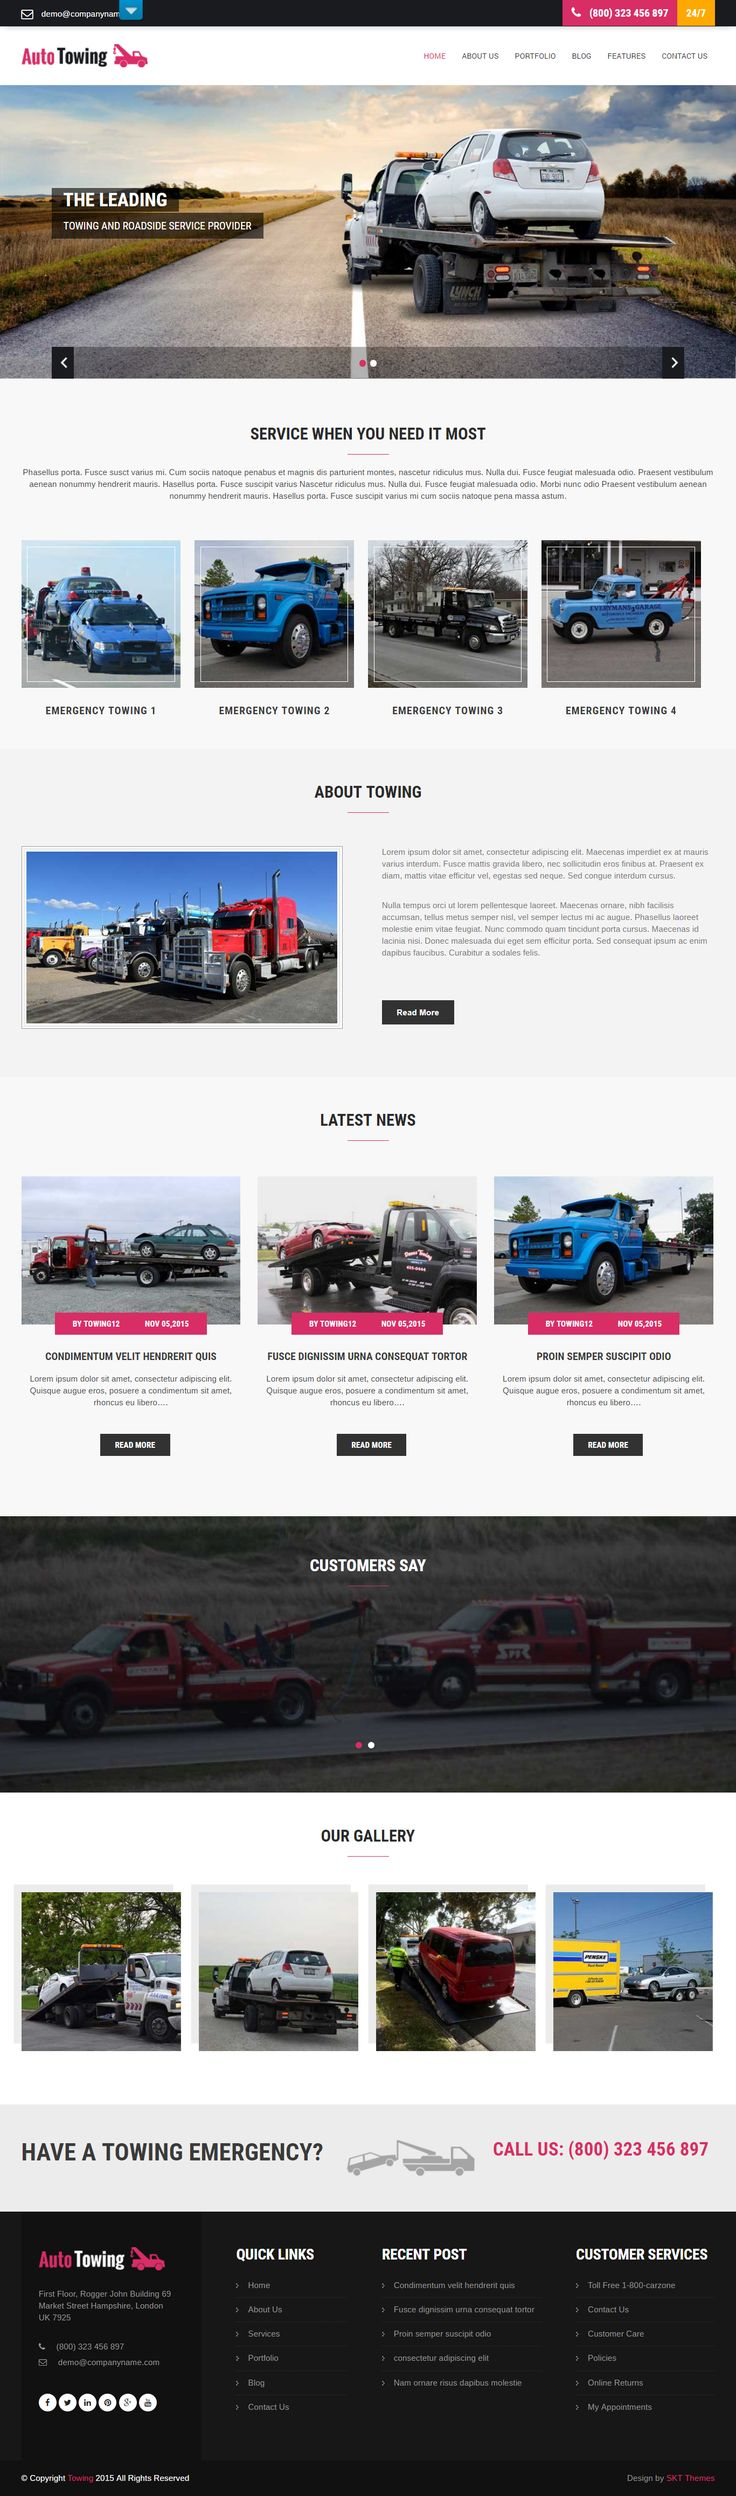 Free Transportation WordPress Theme for Towing of Trucks and Cars